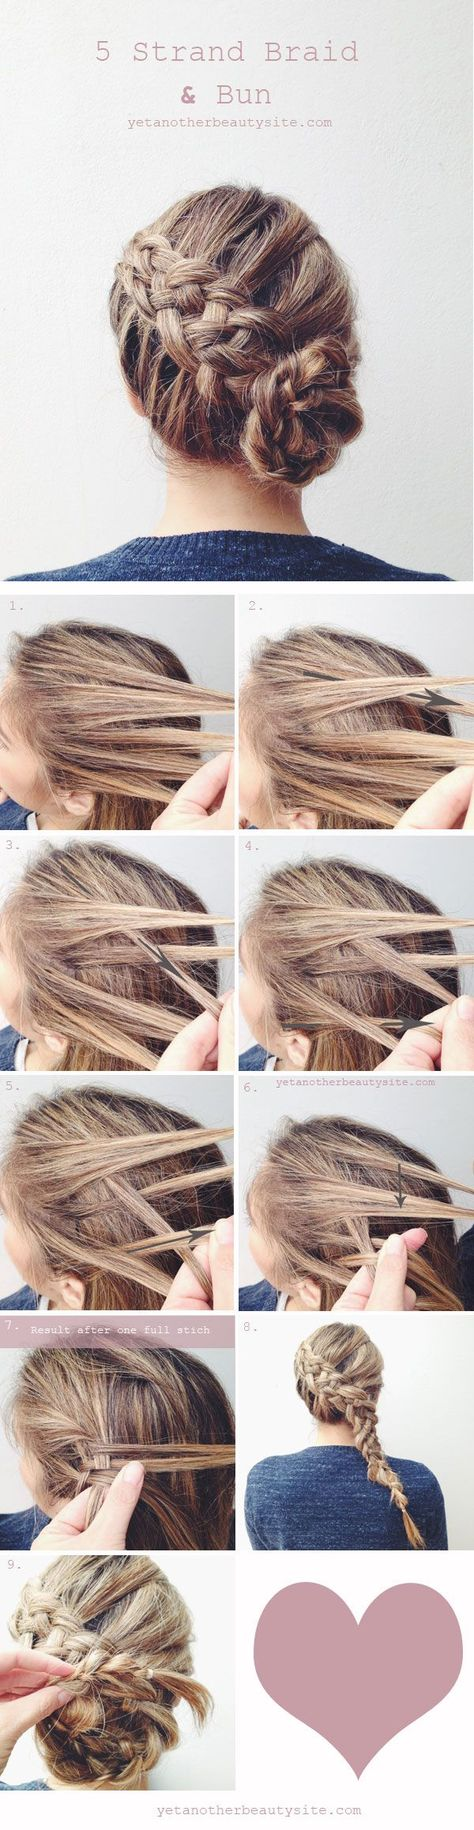 best images about hair on pinterest beautiful colors and curls